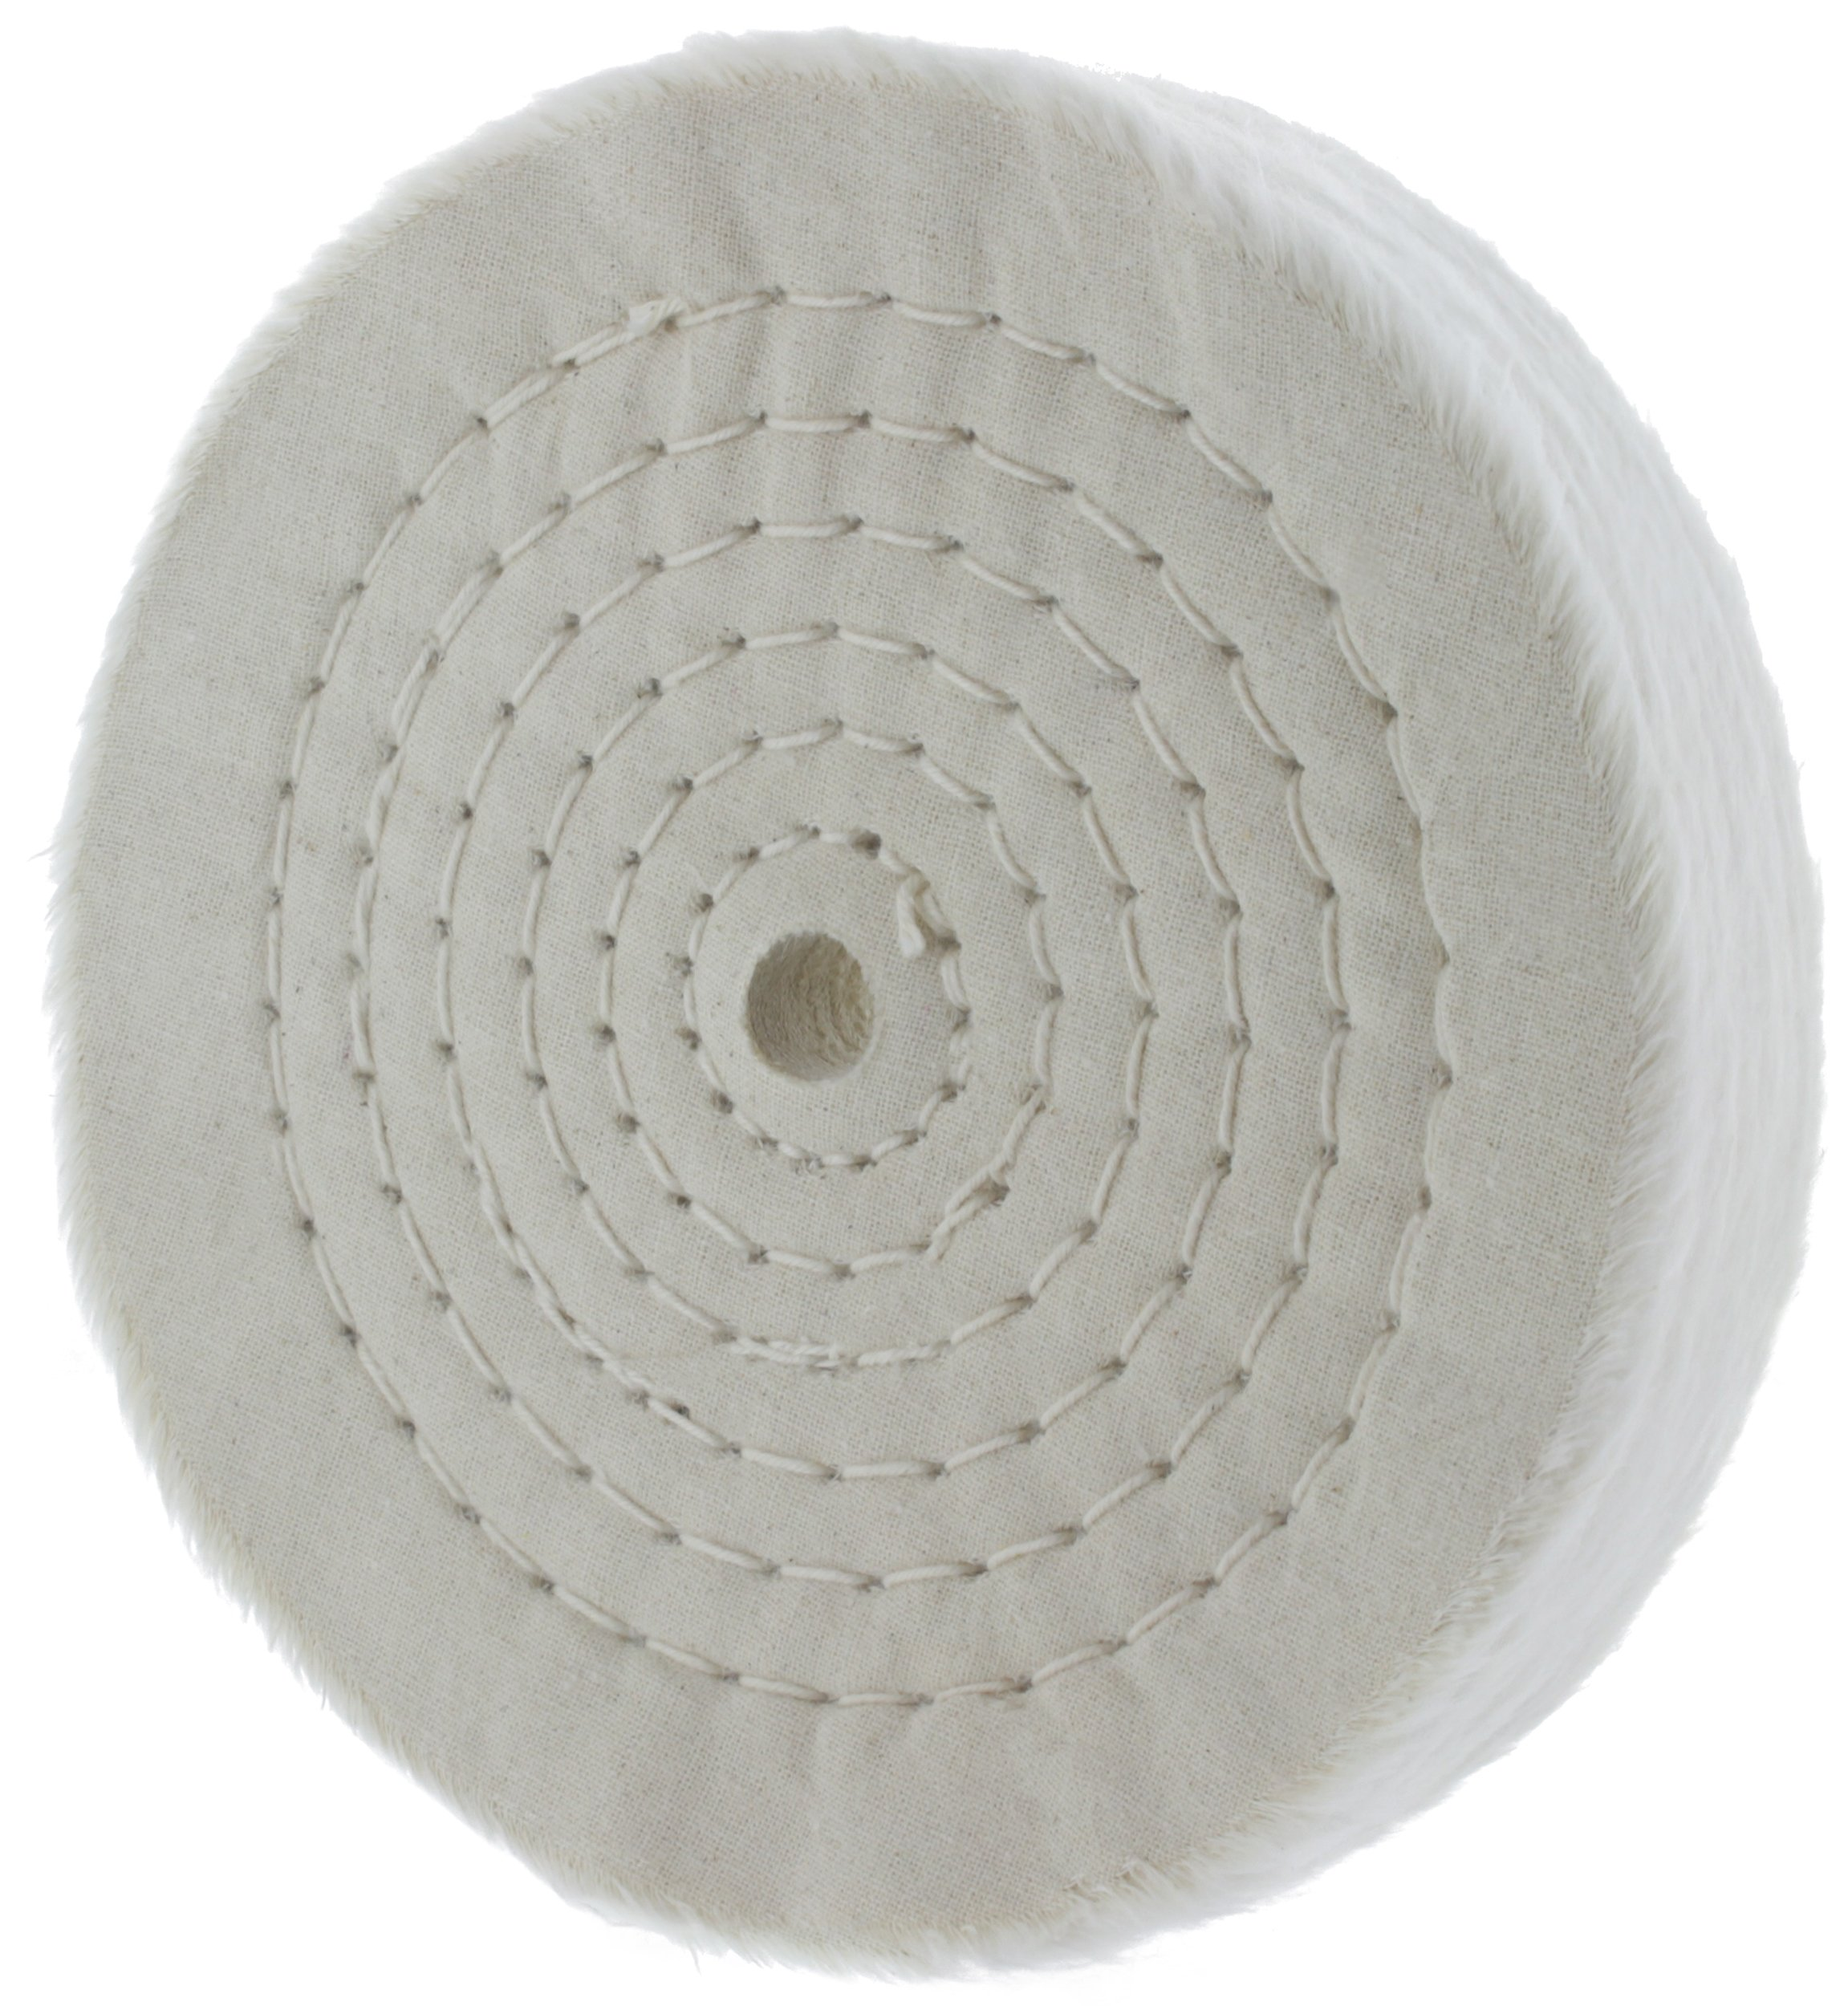 "Drixet Rigid 6 Inch Extra Thick Cotton Treated Spiral Sewn Buffing/Polishing Wheel with a 1/2"" Center Arbor Hole, (80 Ply)"